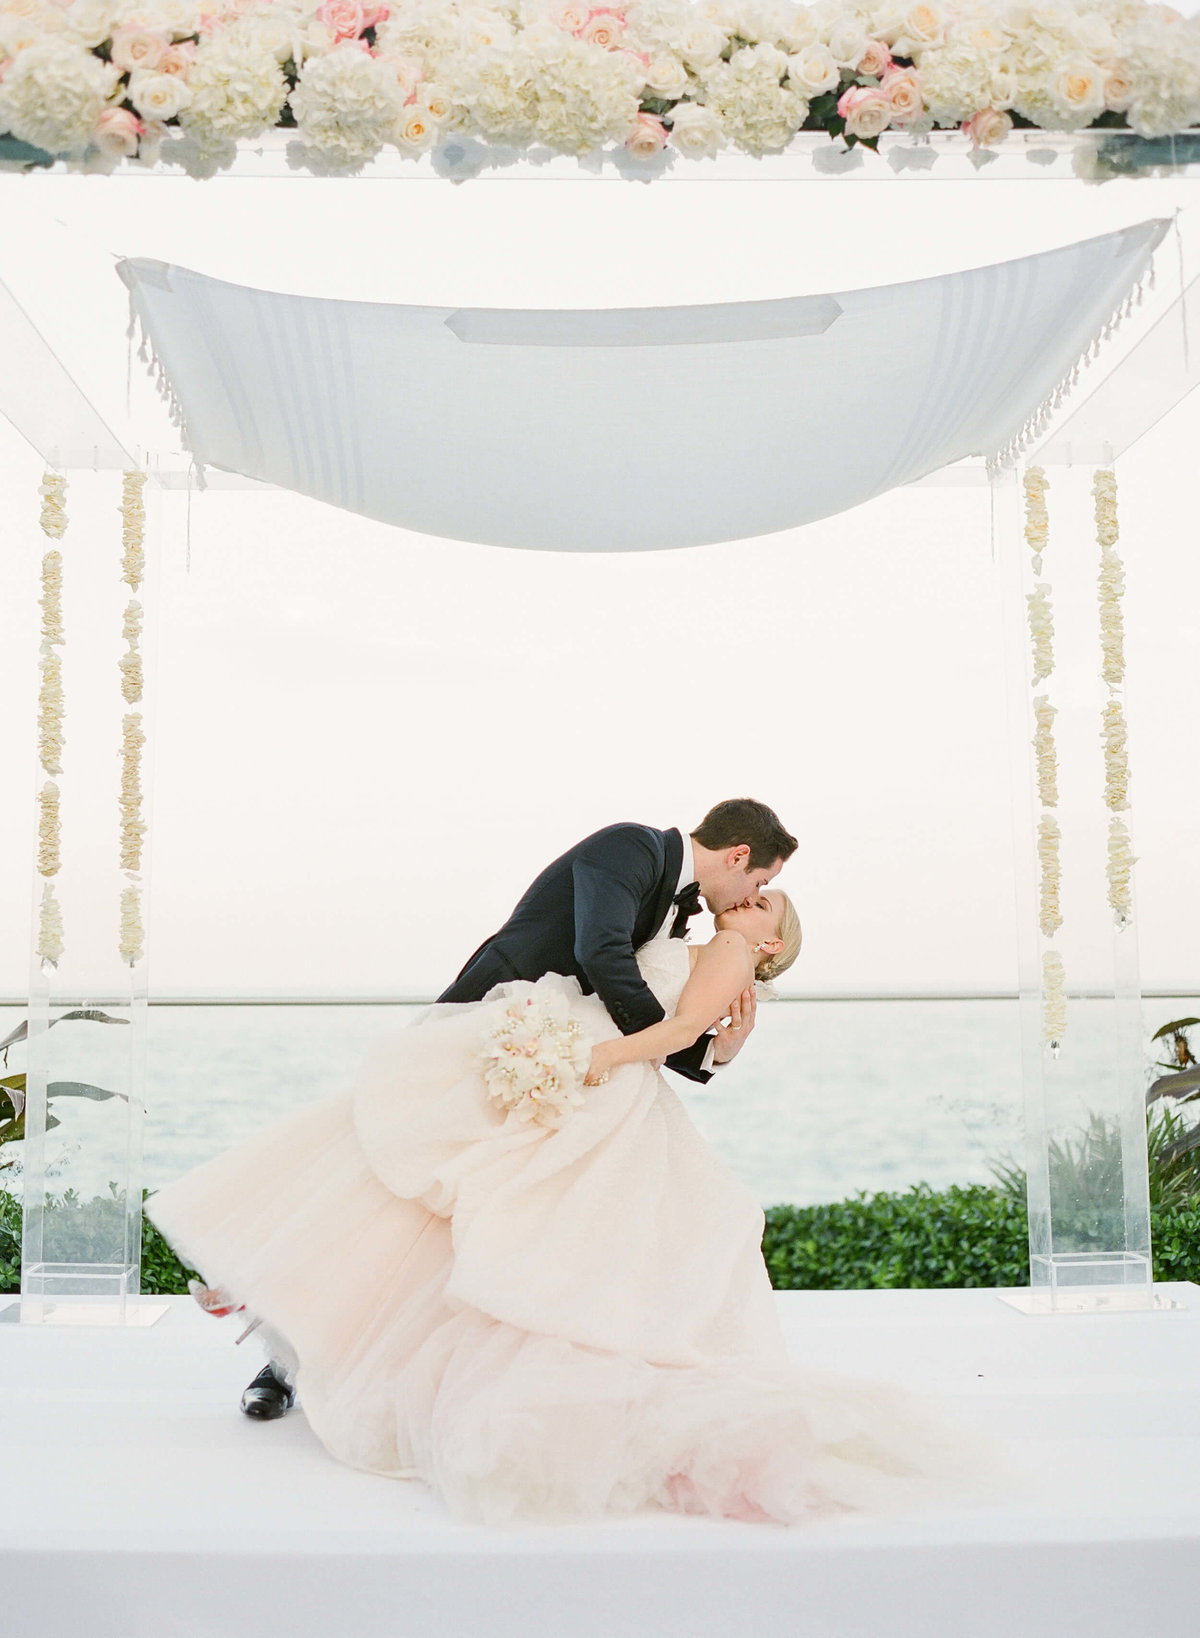 30-KTMerry-weddings-Palm-Beach-ocean-front-kiss